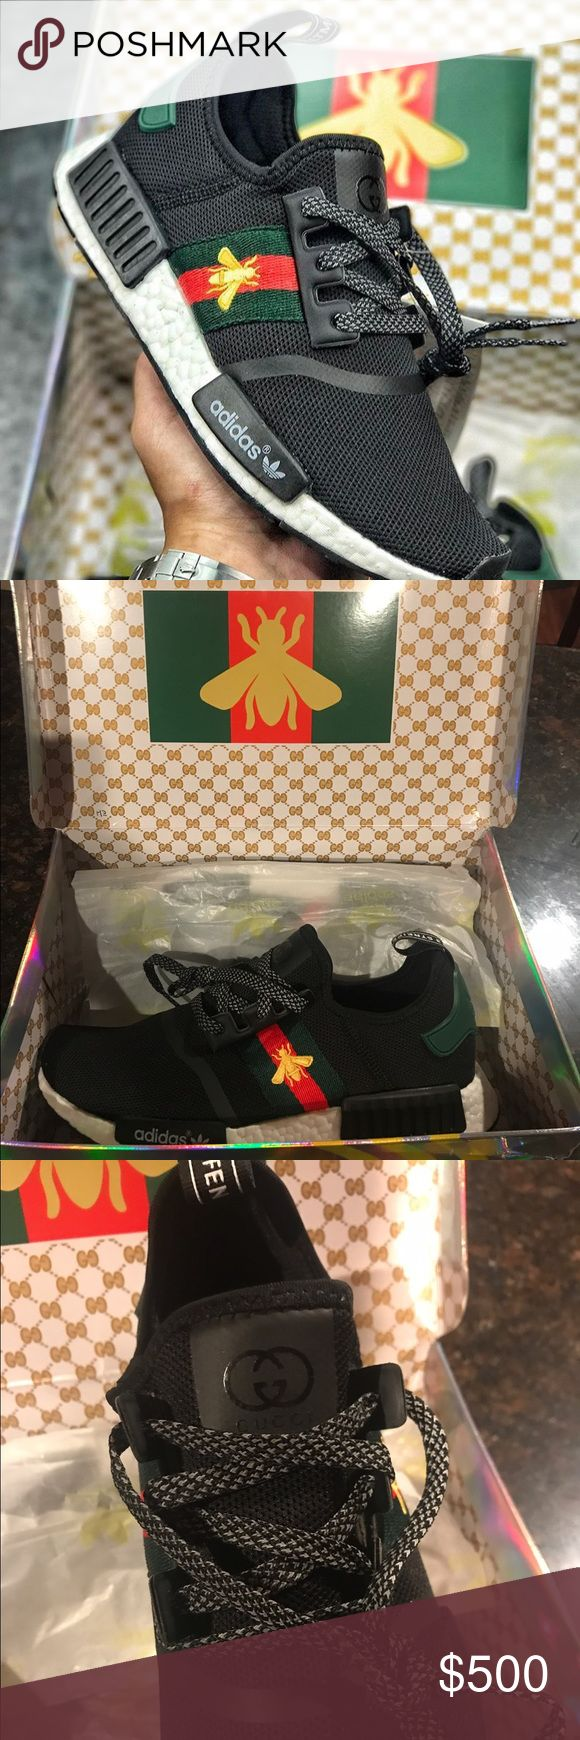 Rare !! GUCCI X NMD ADIDAS COLLABORATION Brand-new with tags never worn Gucci Shoes Sneakers